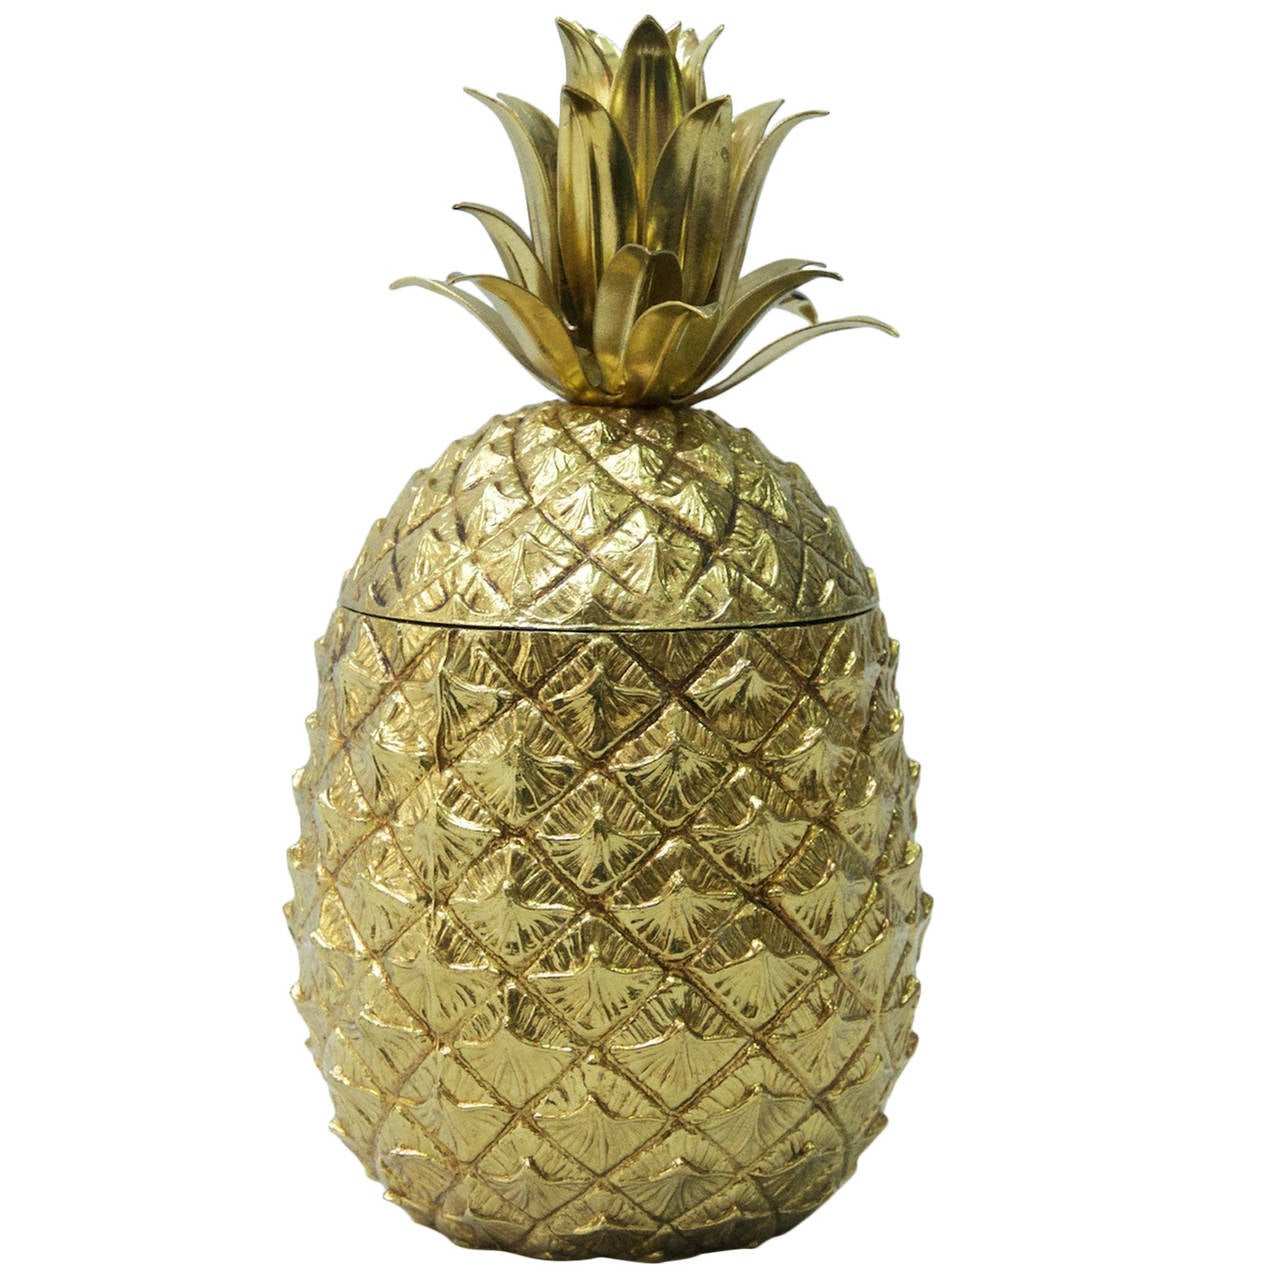 mauro manetti pineapple ice bucket at 1stdibs